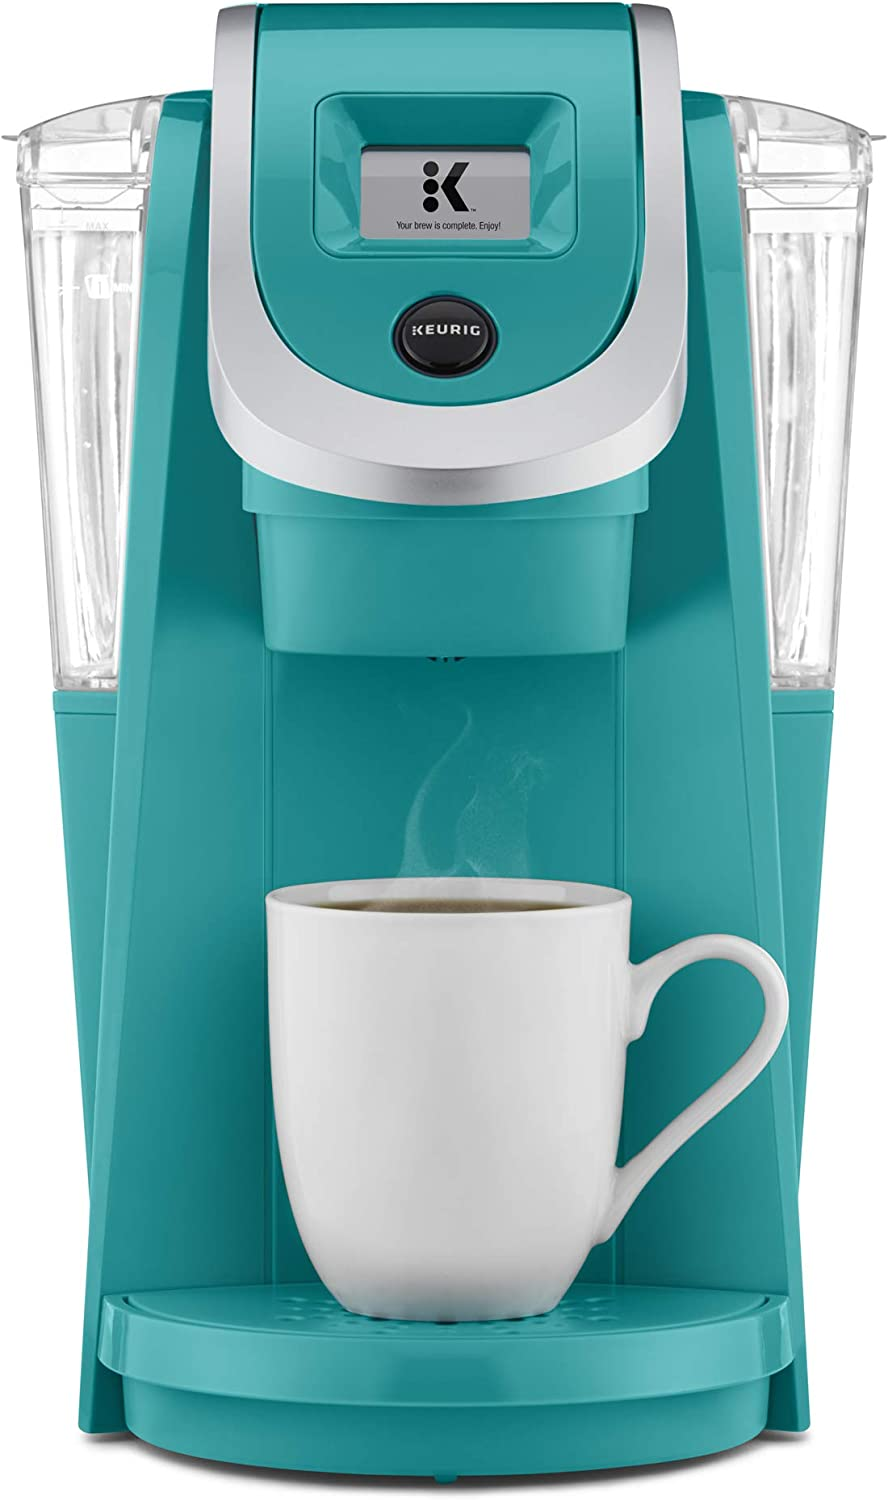 Keurig Maker612 Coffee Maker, 13.8 x 8.9 x 13.6 inches, Turquoise